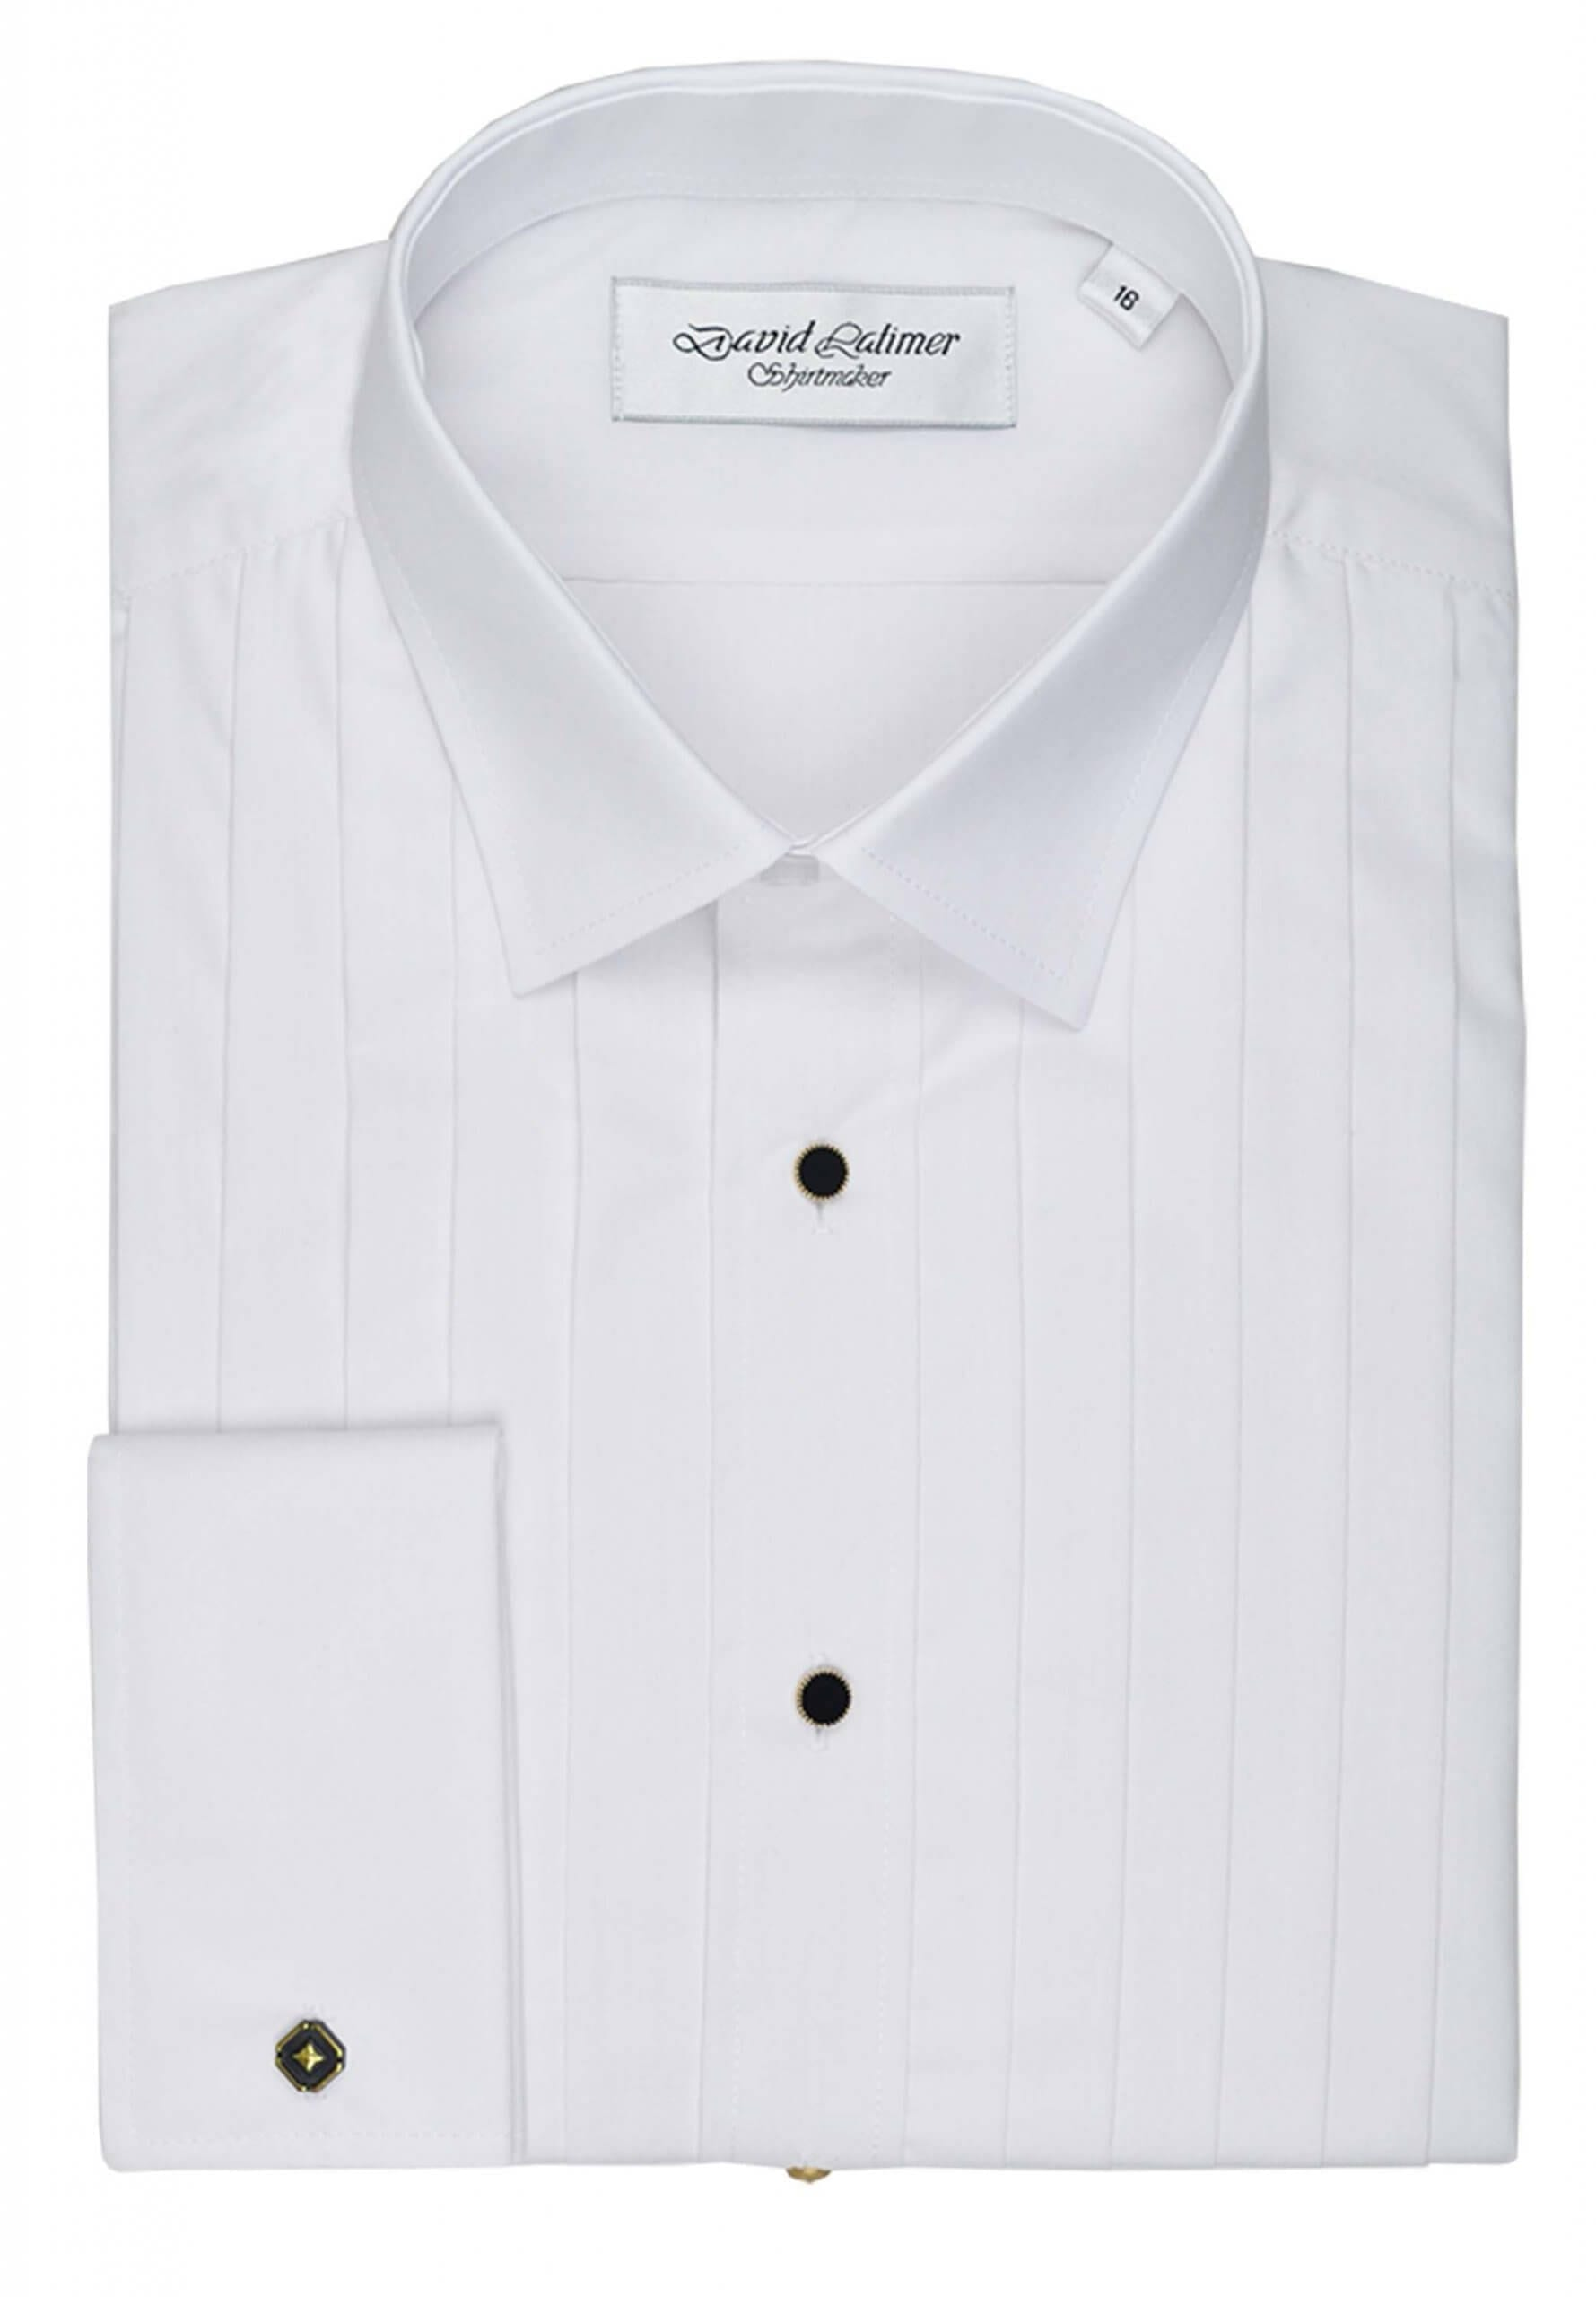 Pleated Front Dress Shirt with Studs, in Standard or Wing Collar